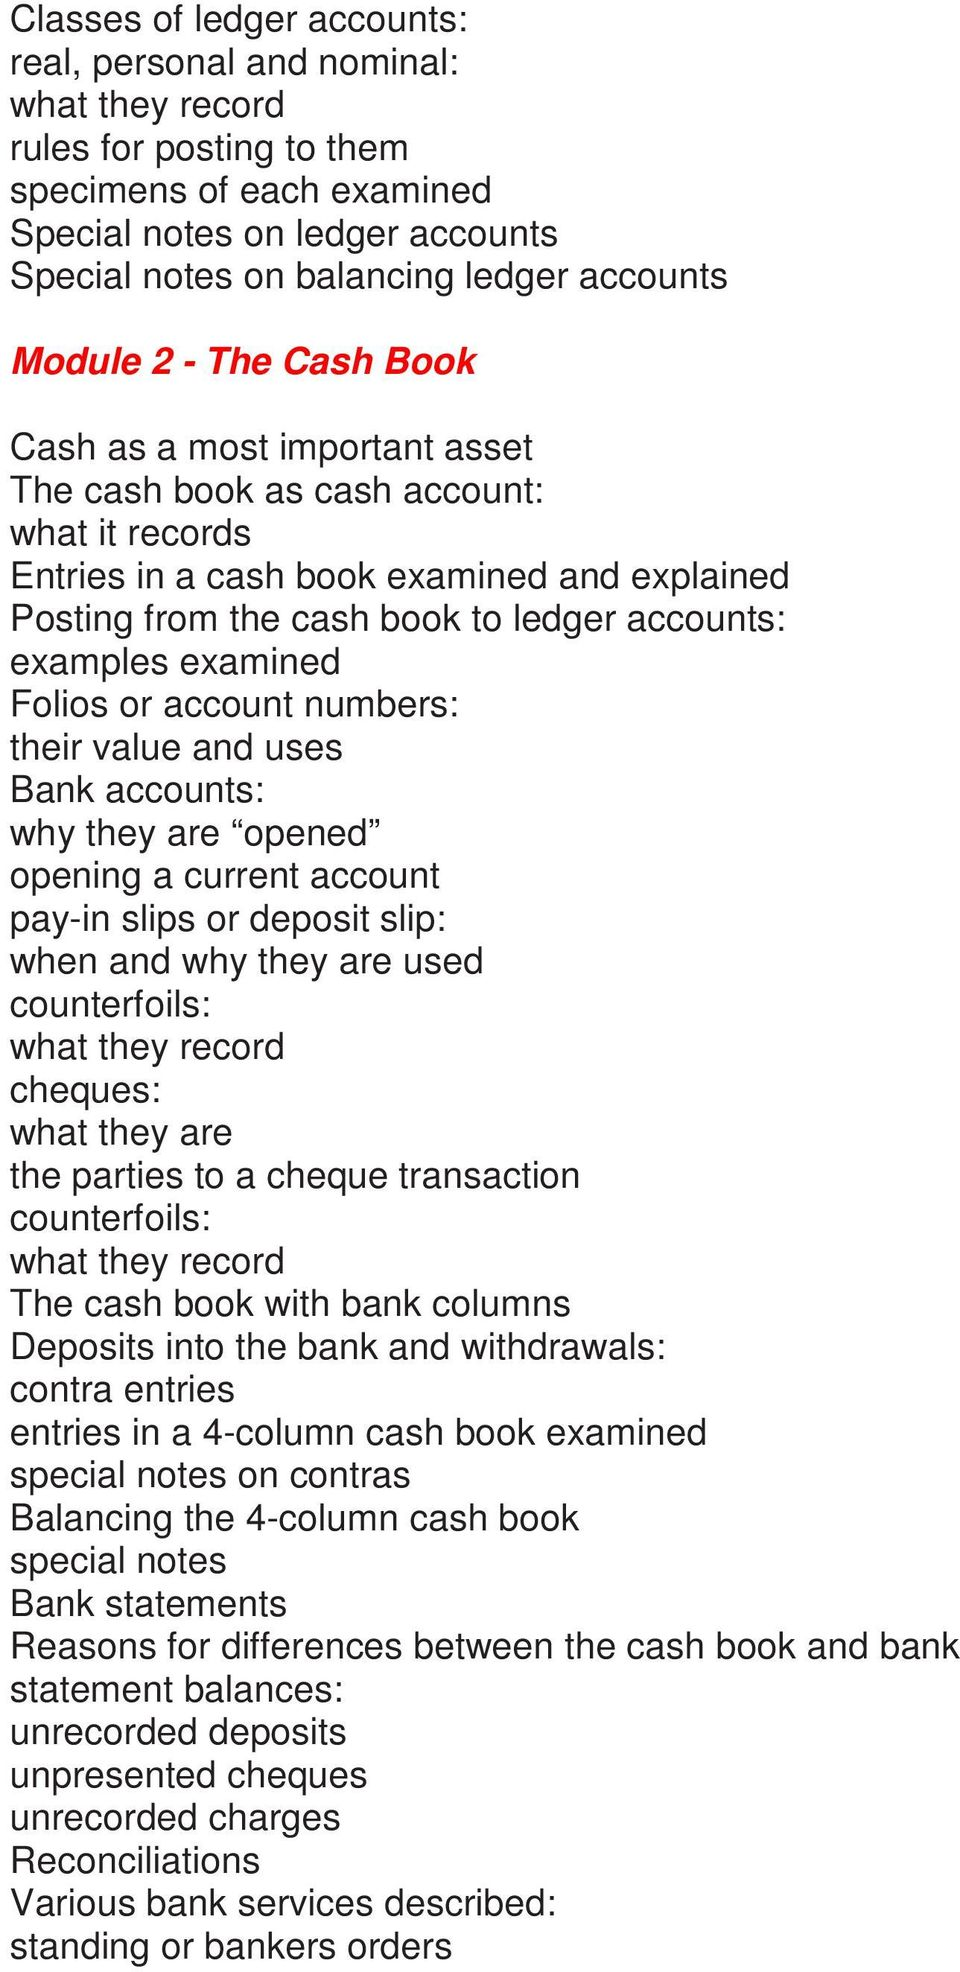 examined Folios or account numbers: their value and uses Bank accounts: why they are opened opening a current account pay-in slips or deposit slip: when and why they are used counterfoils: what they